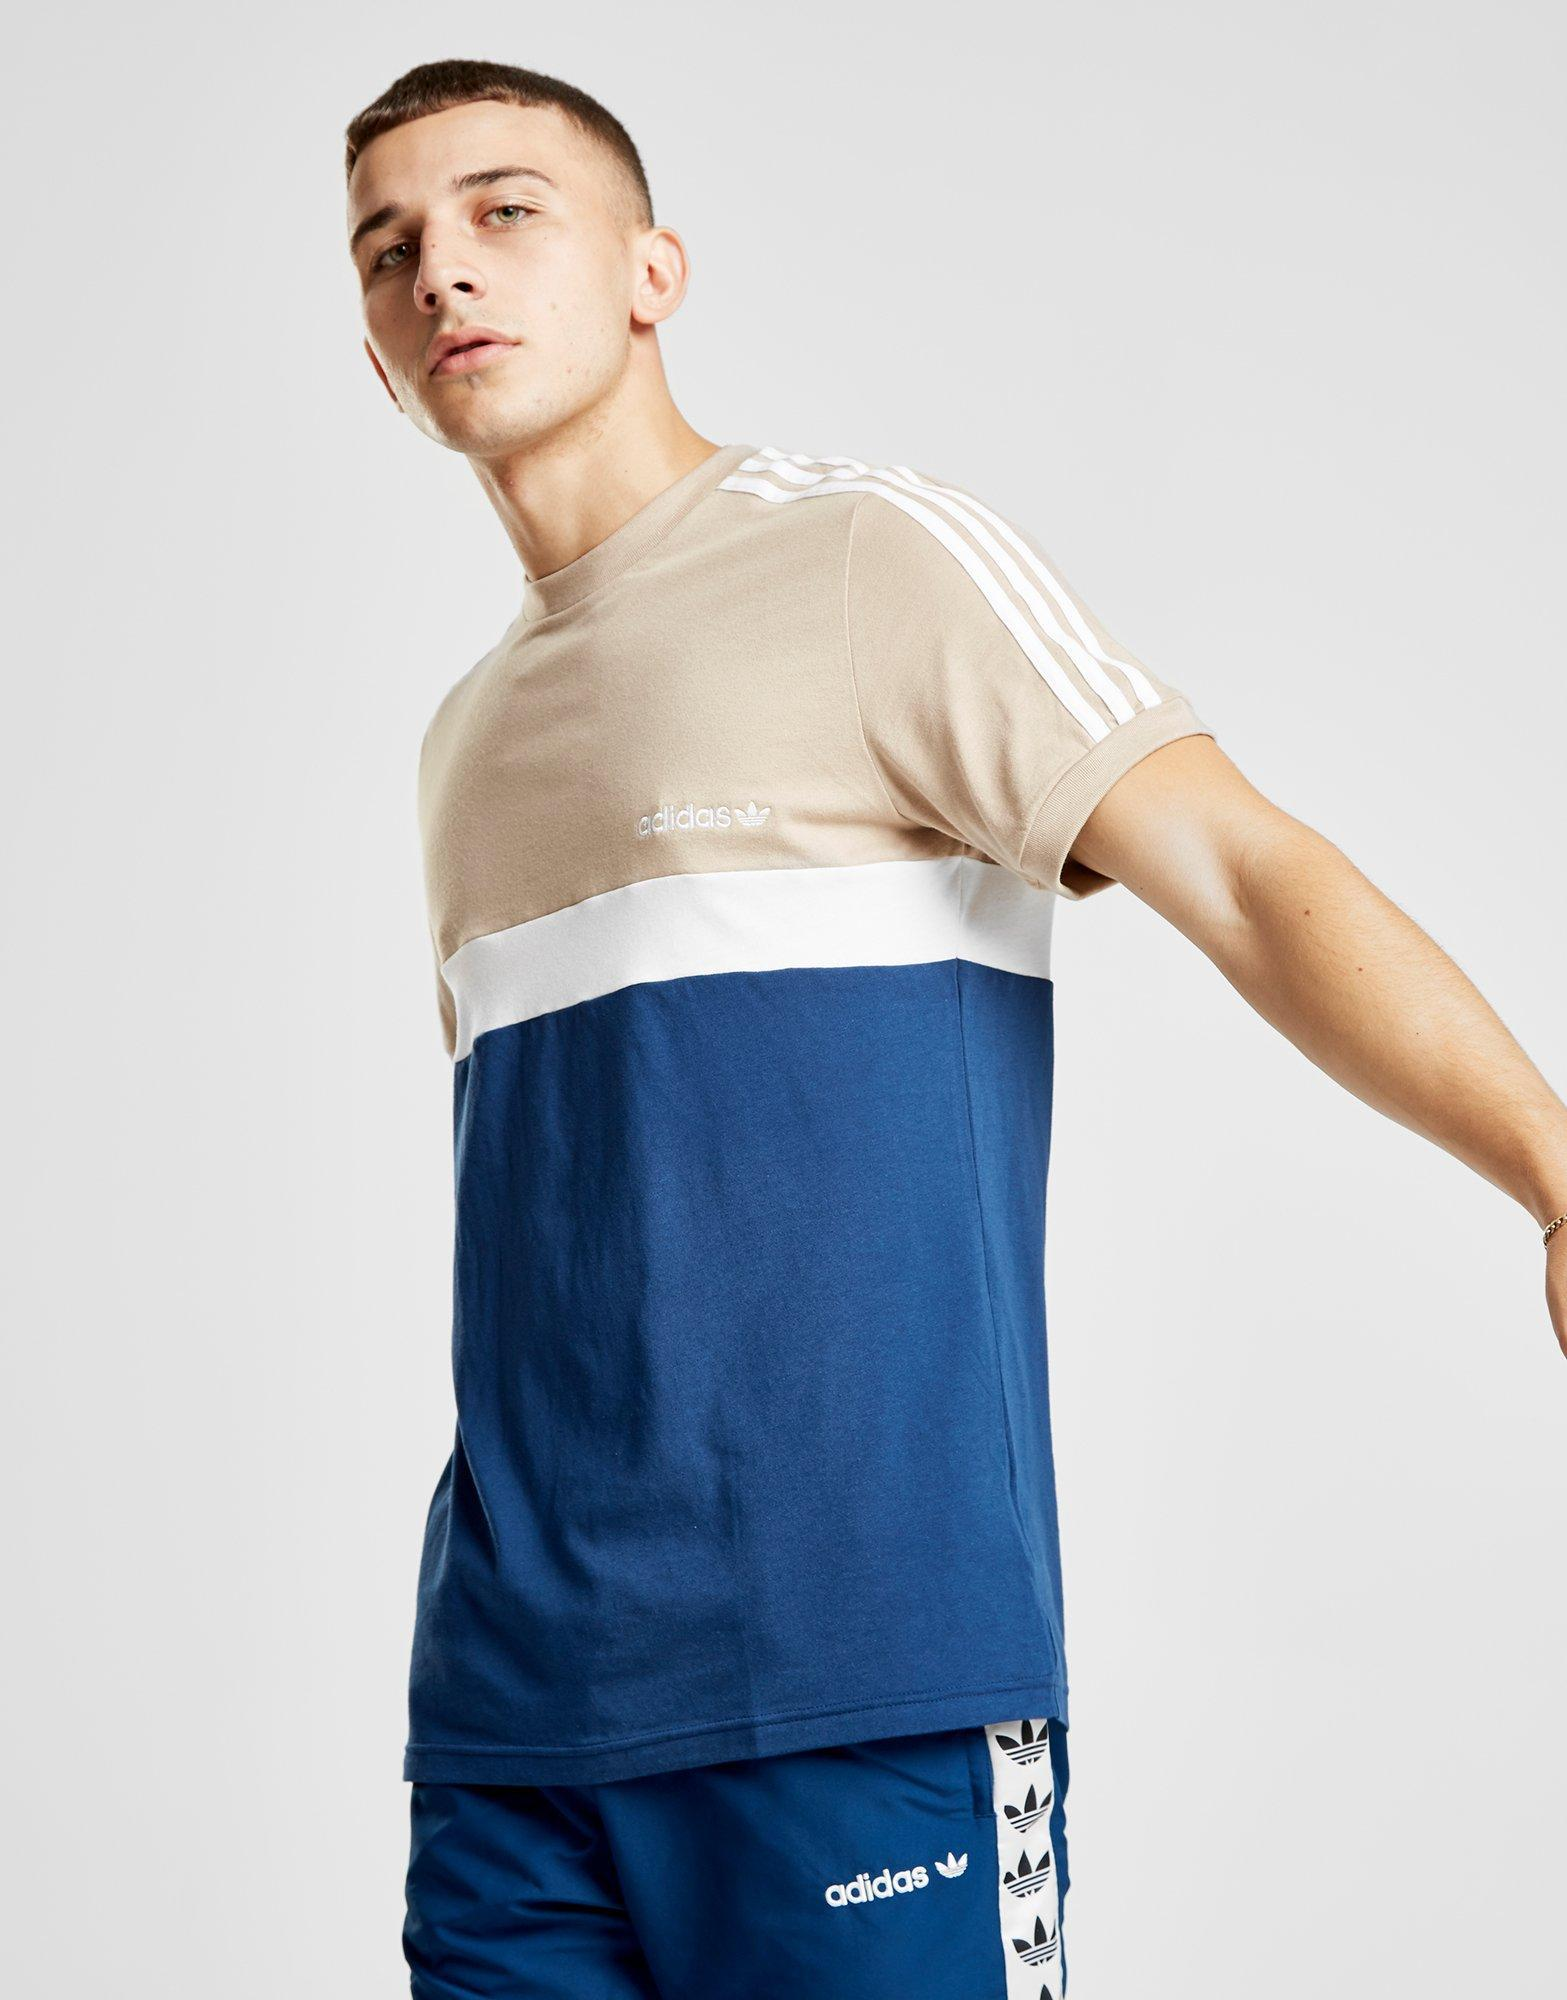 In For Block Lyst Men Adidas Shirt Colour Originals T Blue Itasca W7Tq6YnP8